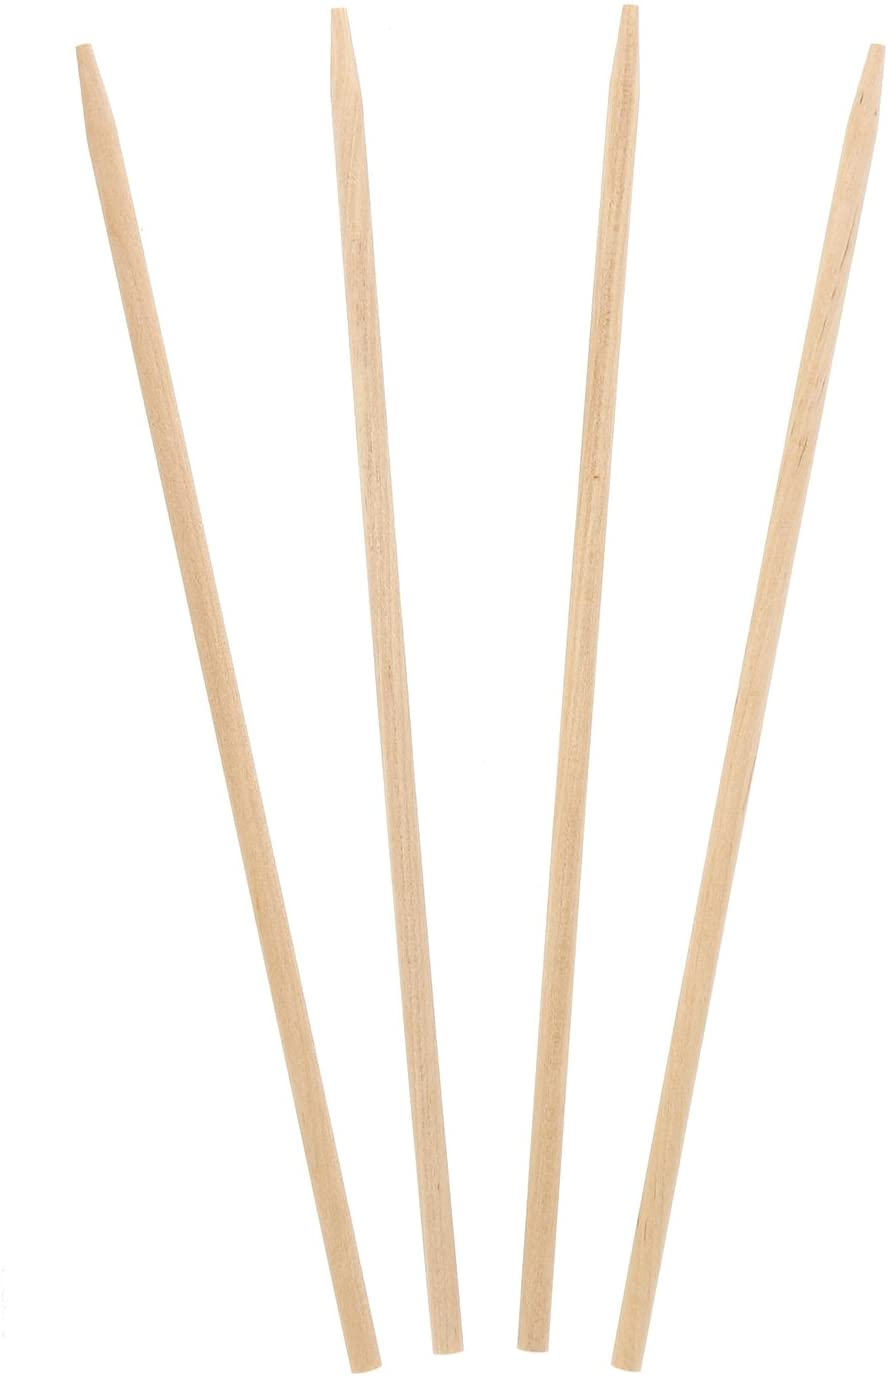 Royal 8.5 Inch x 3/16 Inch Thick Wood Skewers for Grilling Meat, Satays, and Skewered Vegetables, Box 1000